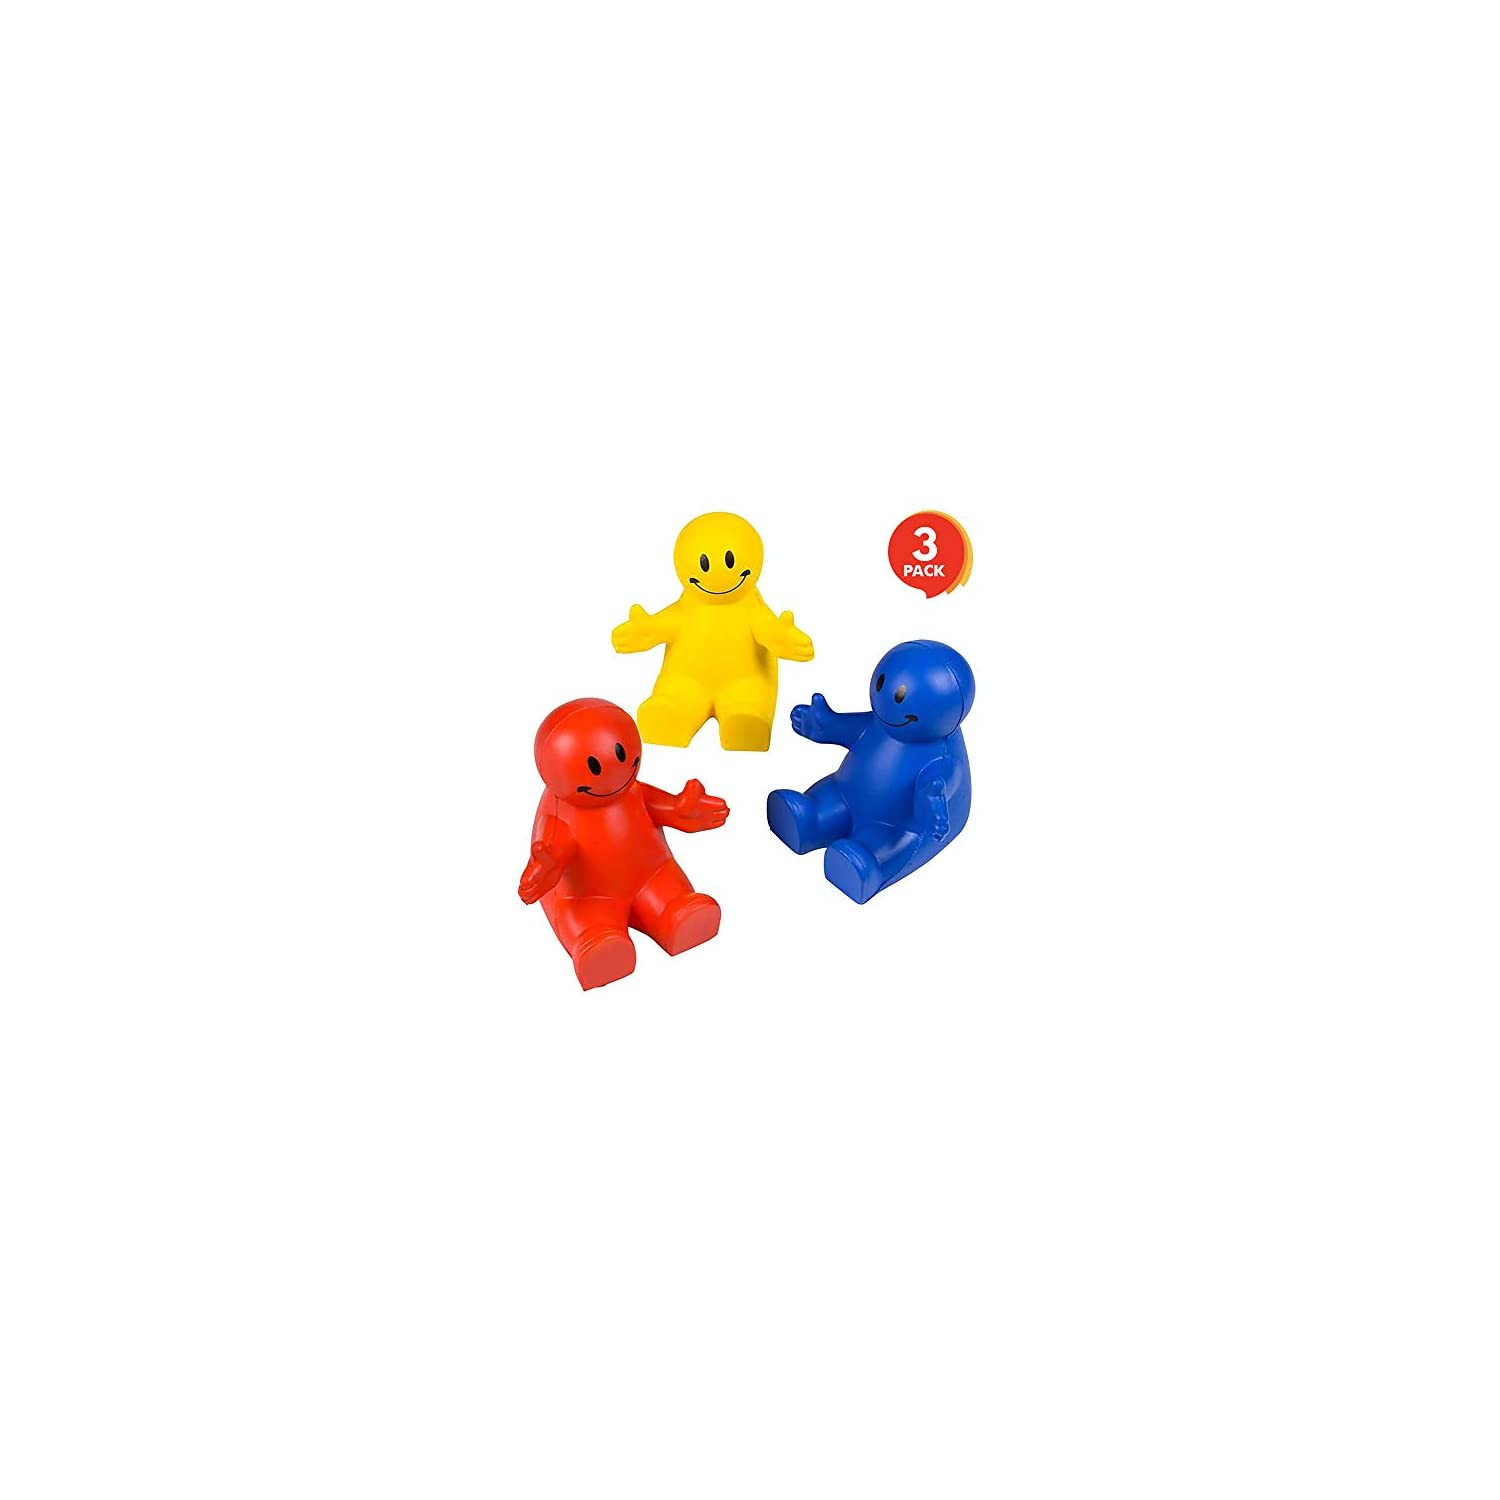 ArtCreativity 4 Inch Squeezable Smile Phone Holder, 3 Pack, 2-in-1 Smartphone Stand, Squeeze Stress Relief Fidget Toy for Kids & Adults, Desk Decoration, Party Favor, Office Gift, Red-Blue-Yellow